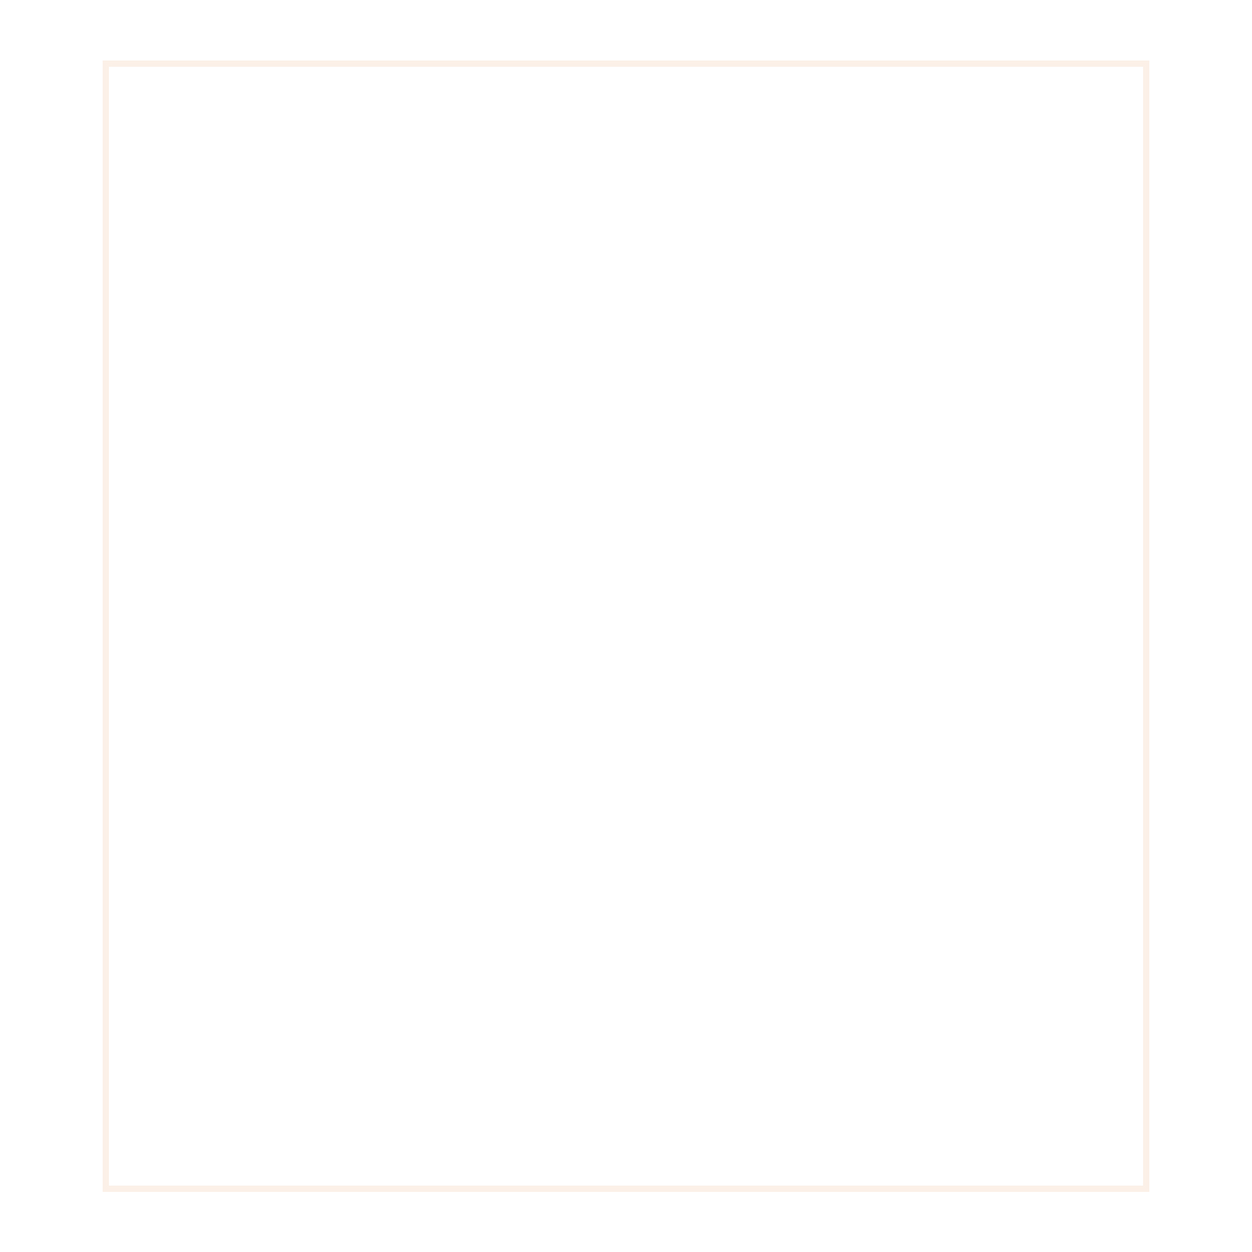 rectangle lower opacity.png